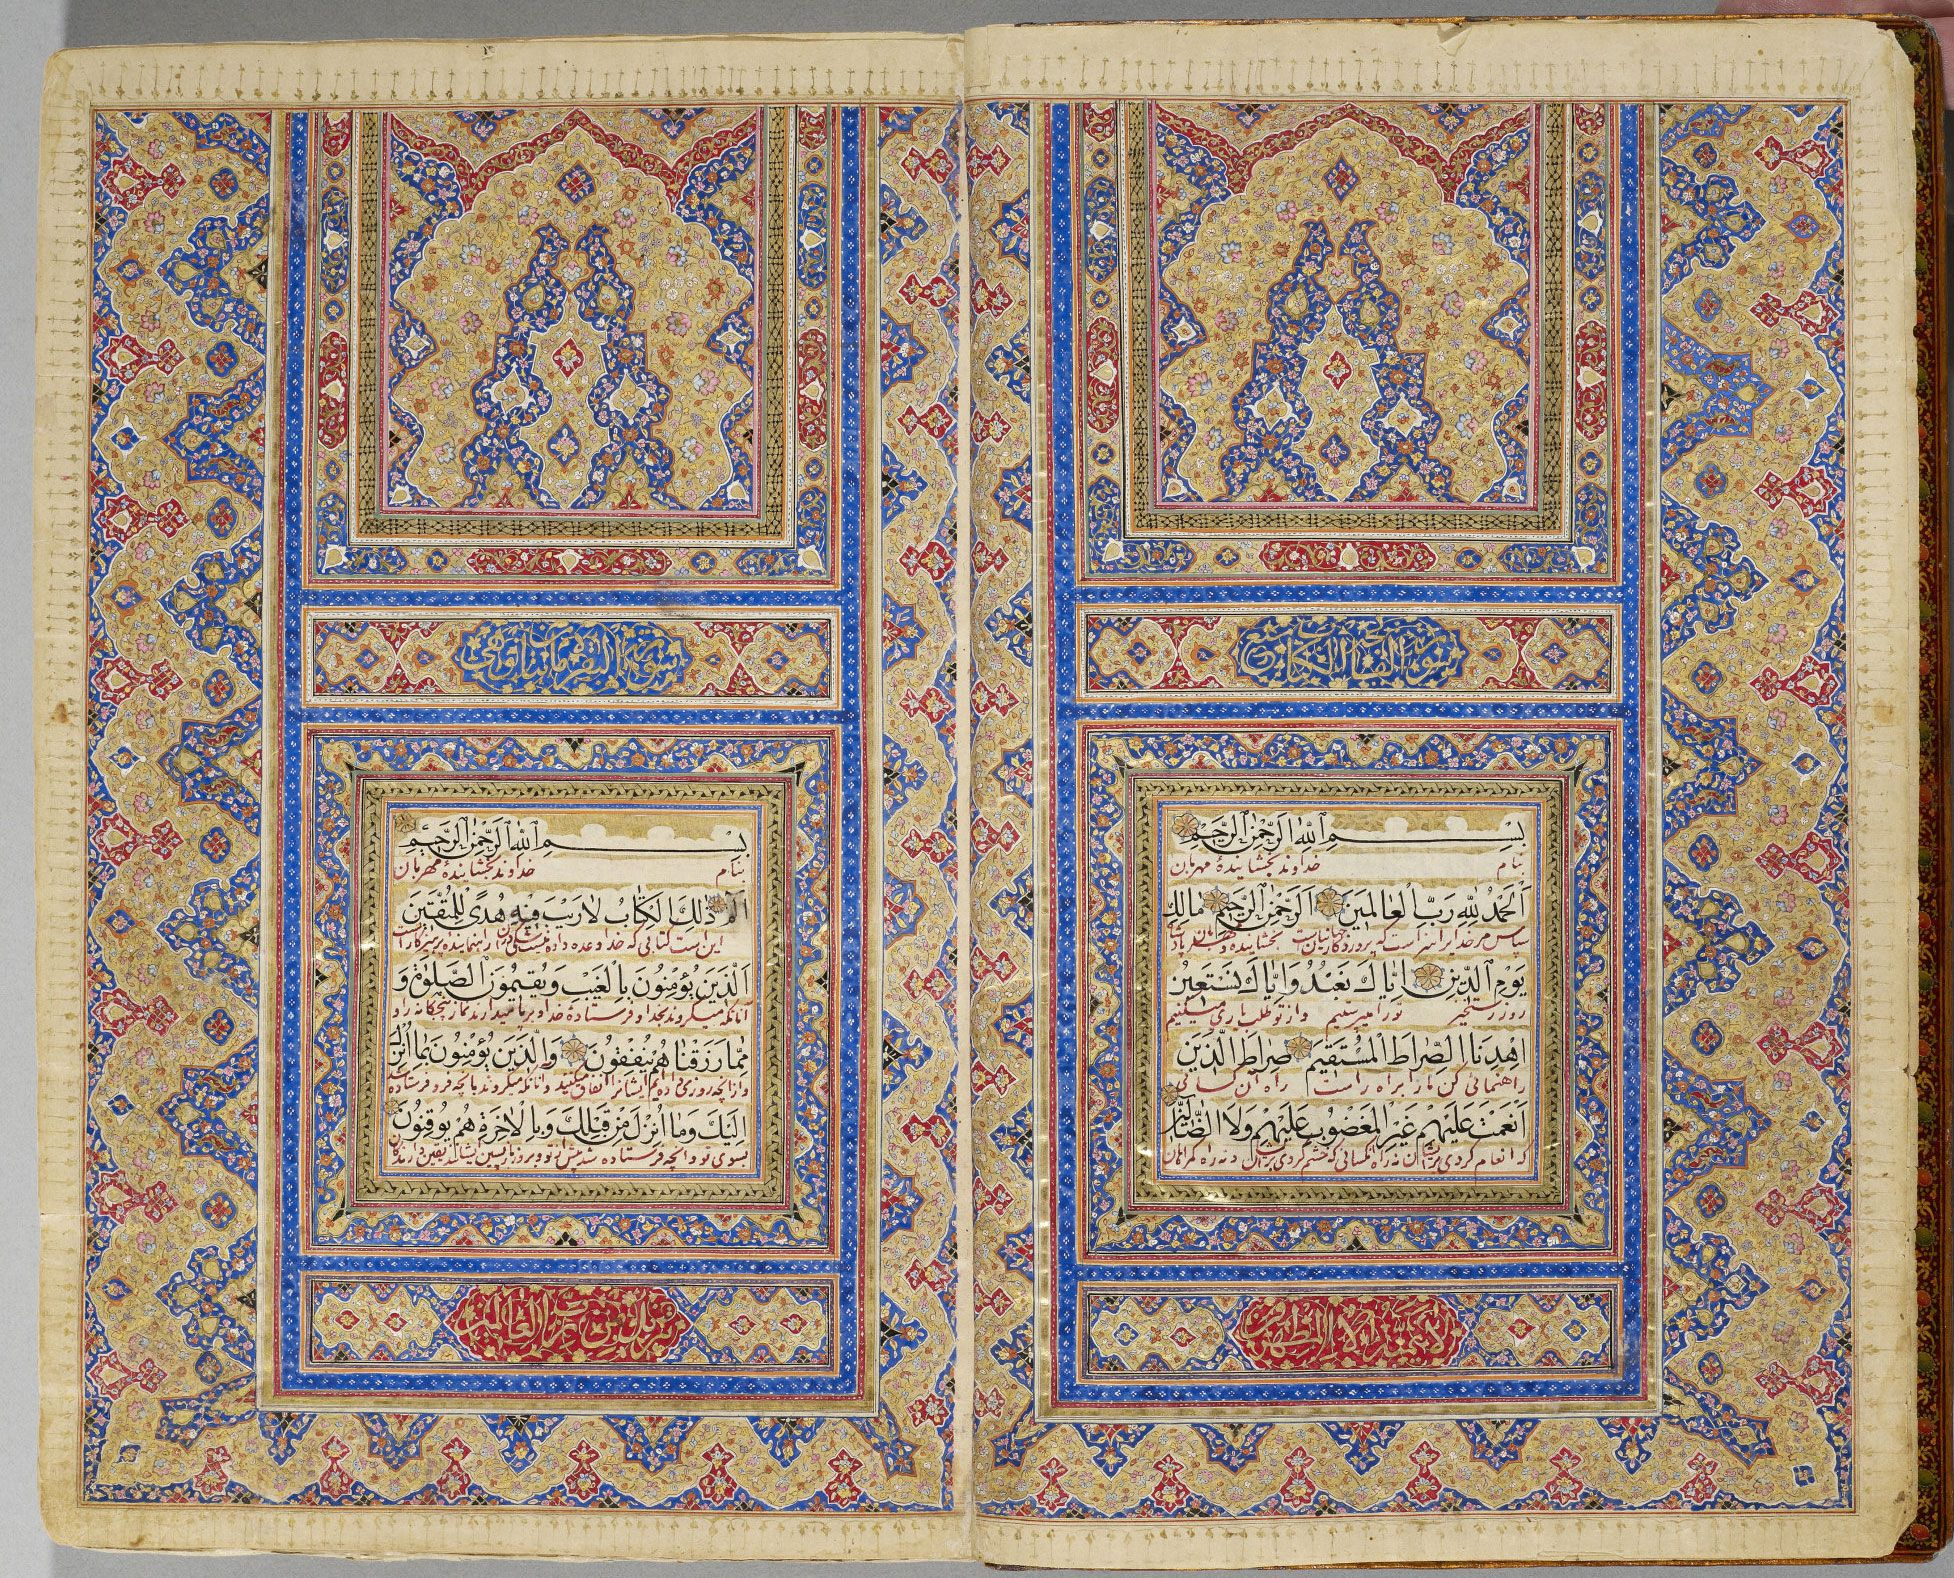 Manuscript Of A Qajar Qur'an Geography Iran Period Qajar, dated 1233 H/1817-18 CE Dynasty Qajar Materials and technique Ink, opaque watercolour, and gold on paper; later leather binding Dimensions 22.6 x 16.9 x 4.1 cm  http://www.akdn.org/museum/detail.asp?artifactid=1534#